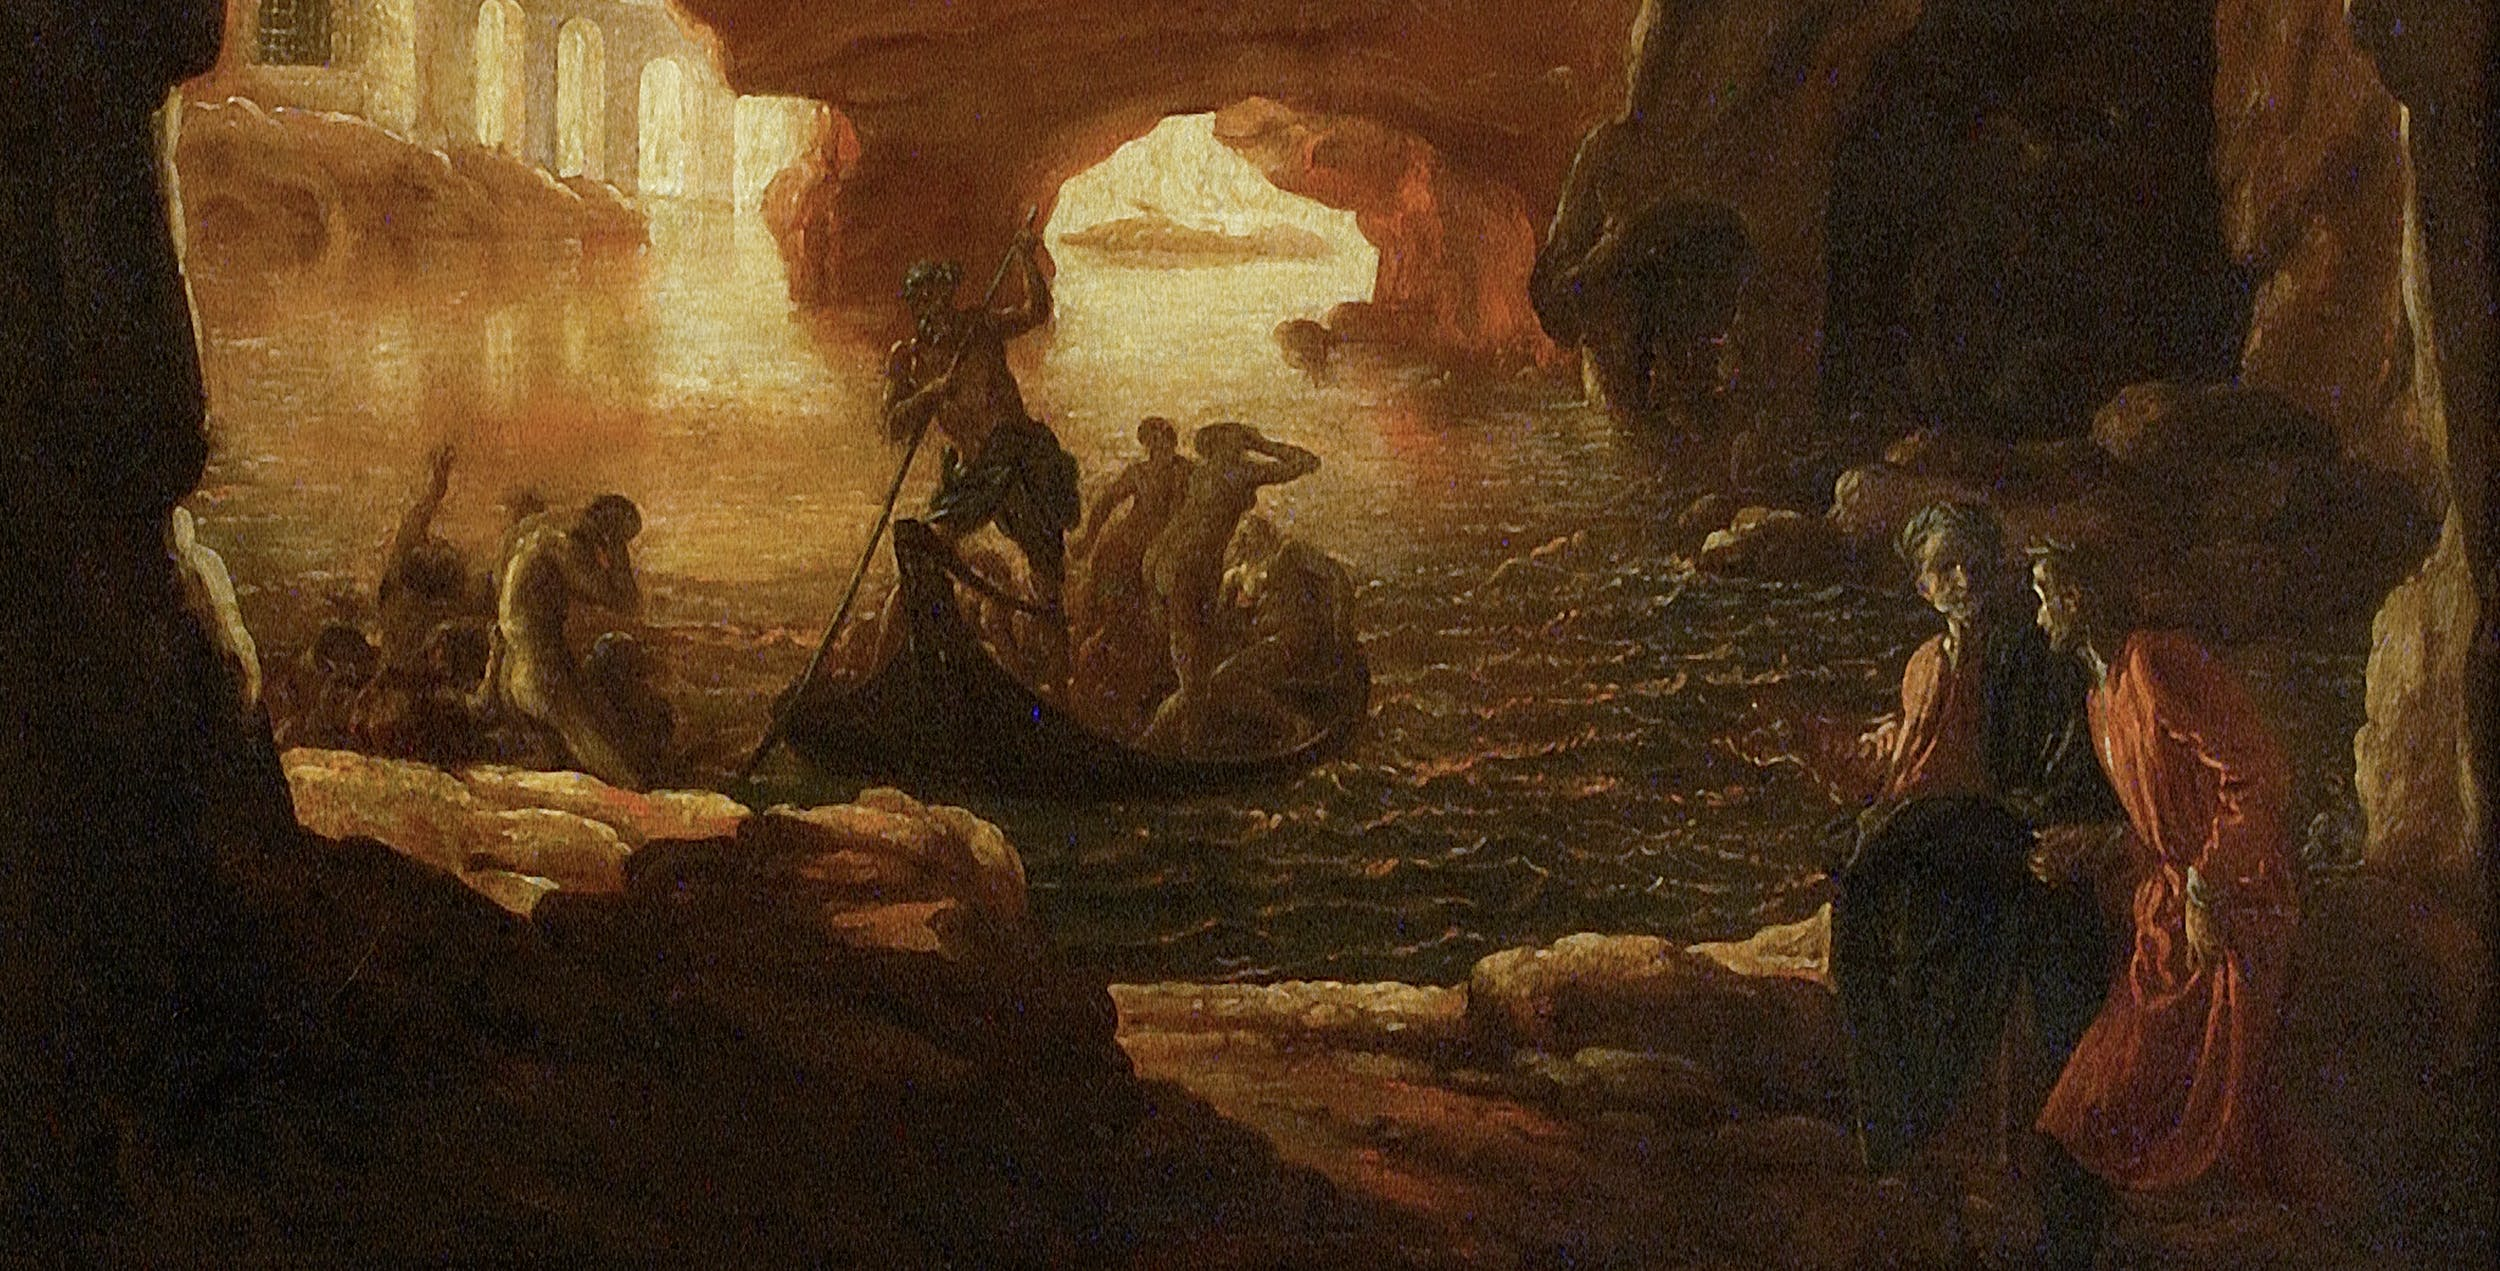 Livio Mehus, Crescenzio Onofri, Dante e Virgilio all'Inferno, Palazzo Pitti, Galleria Palatina (part.)